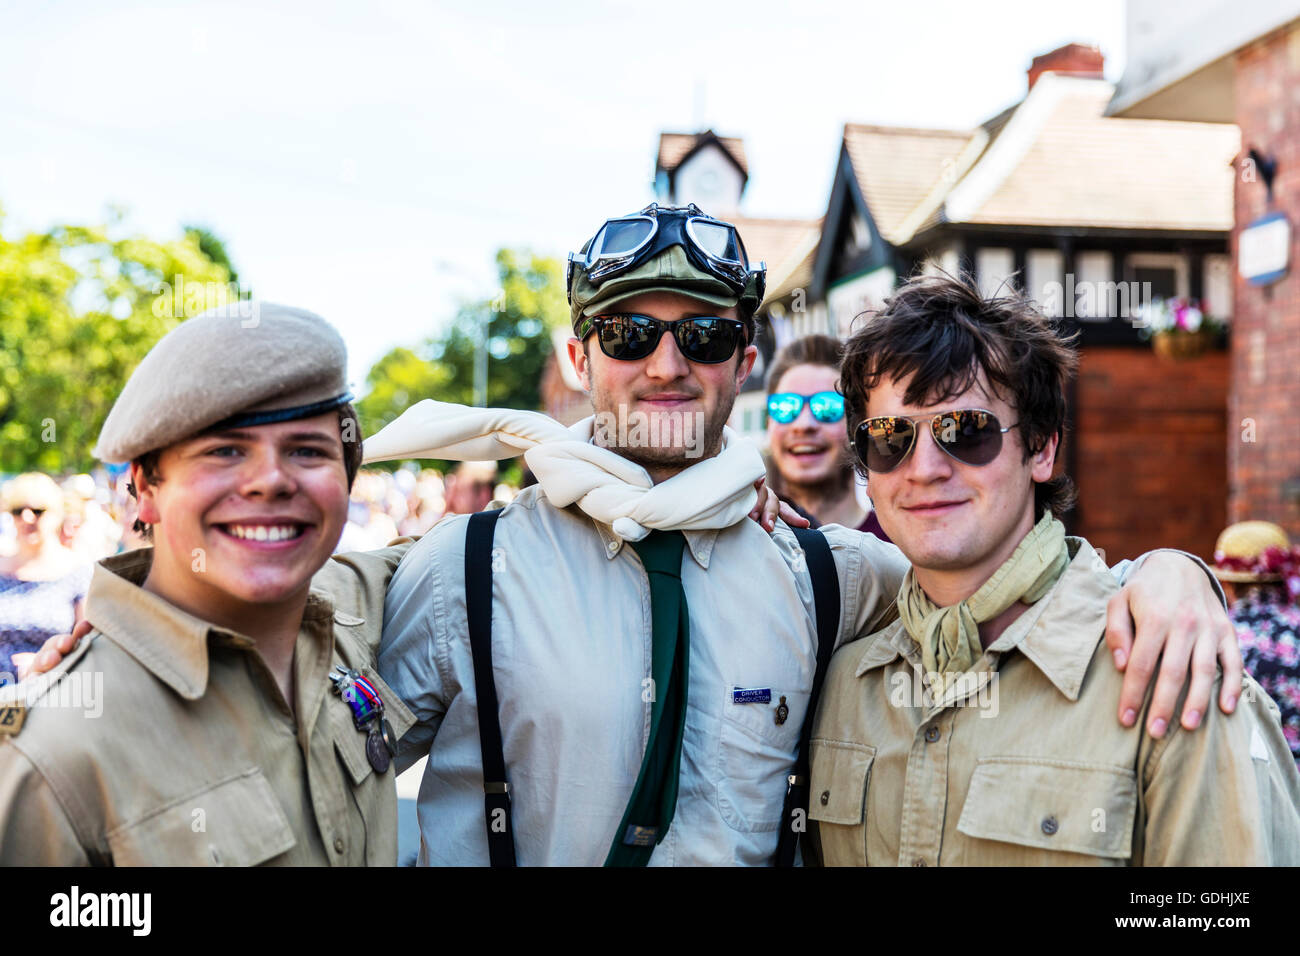 3 friends pals buddies work mates pilots US air force crew 1940's style dress uniform uniforms goggles biggles - Stock Image